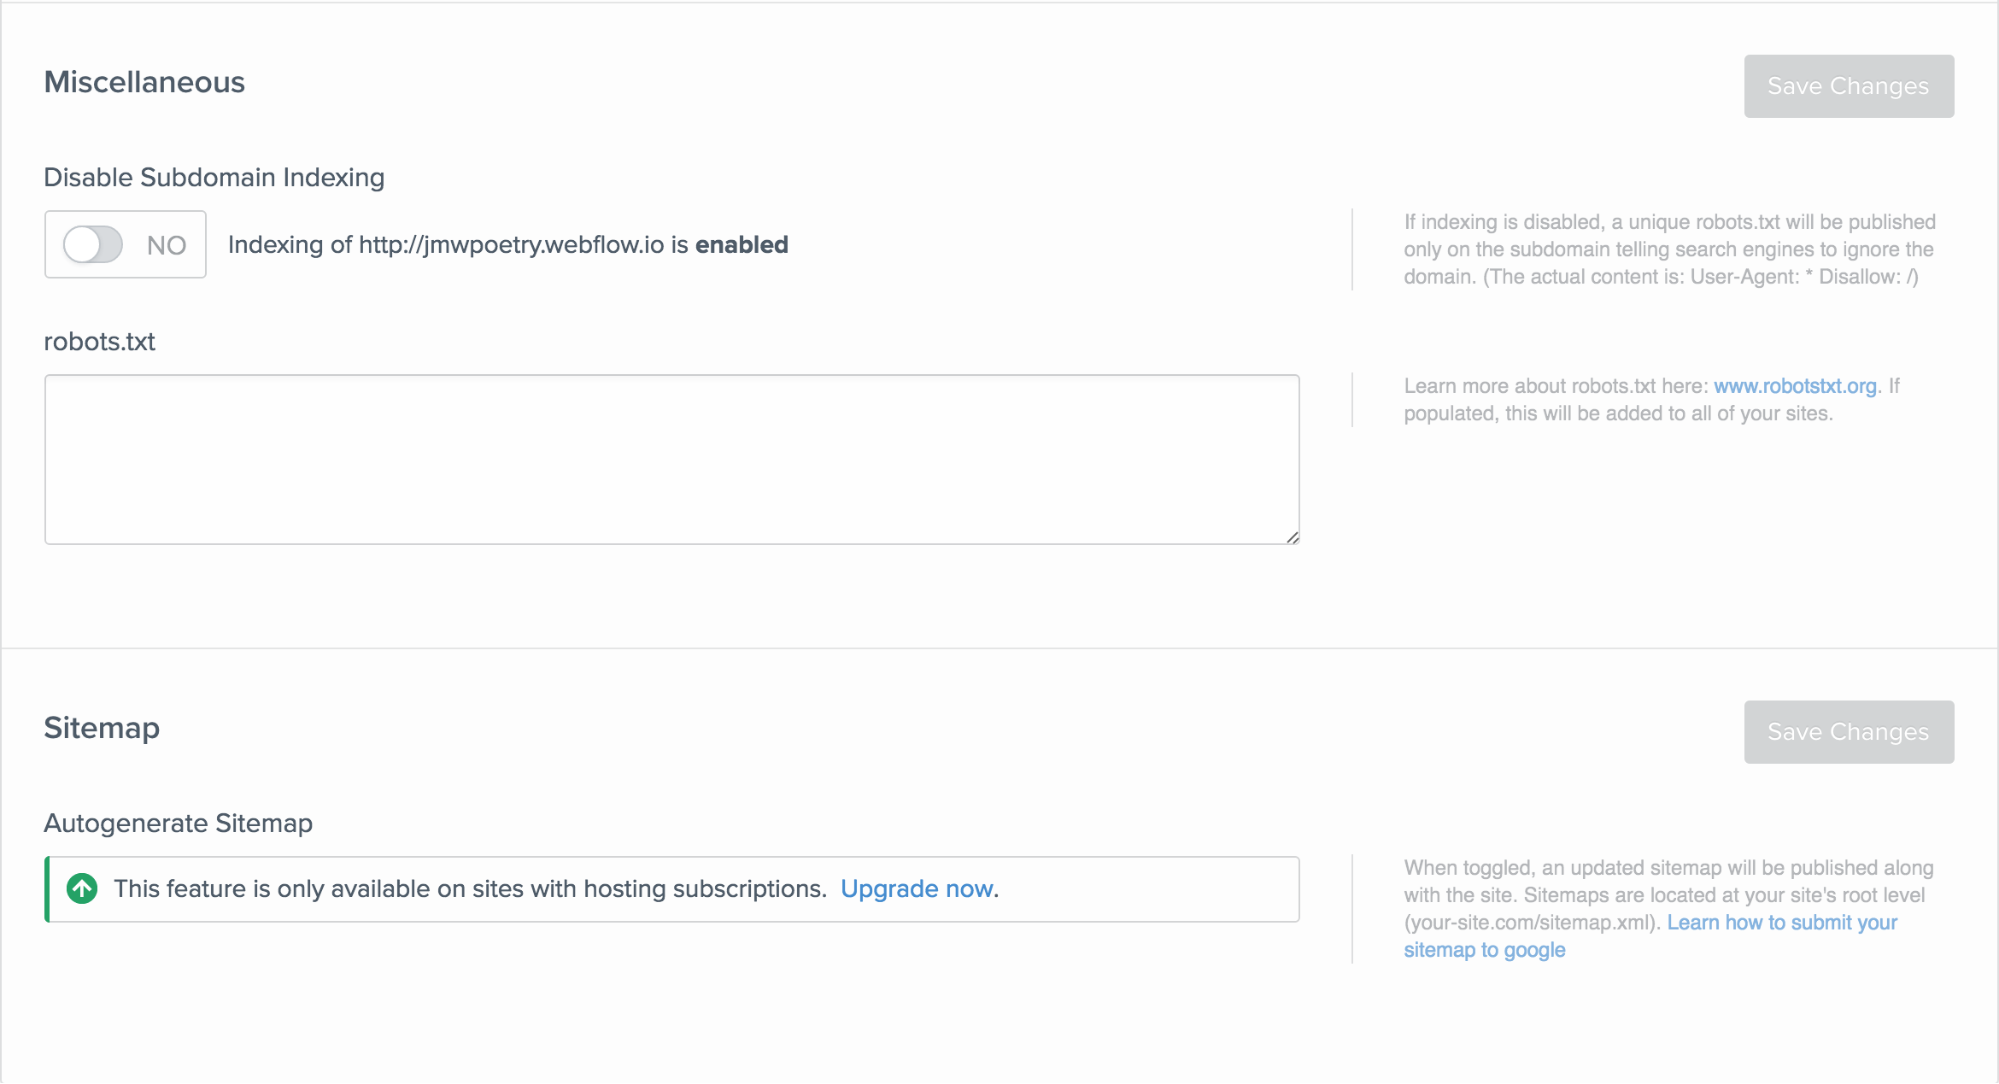 You can disable subdomain indexing in your Site Settings